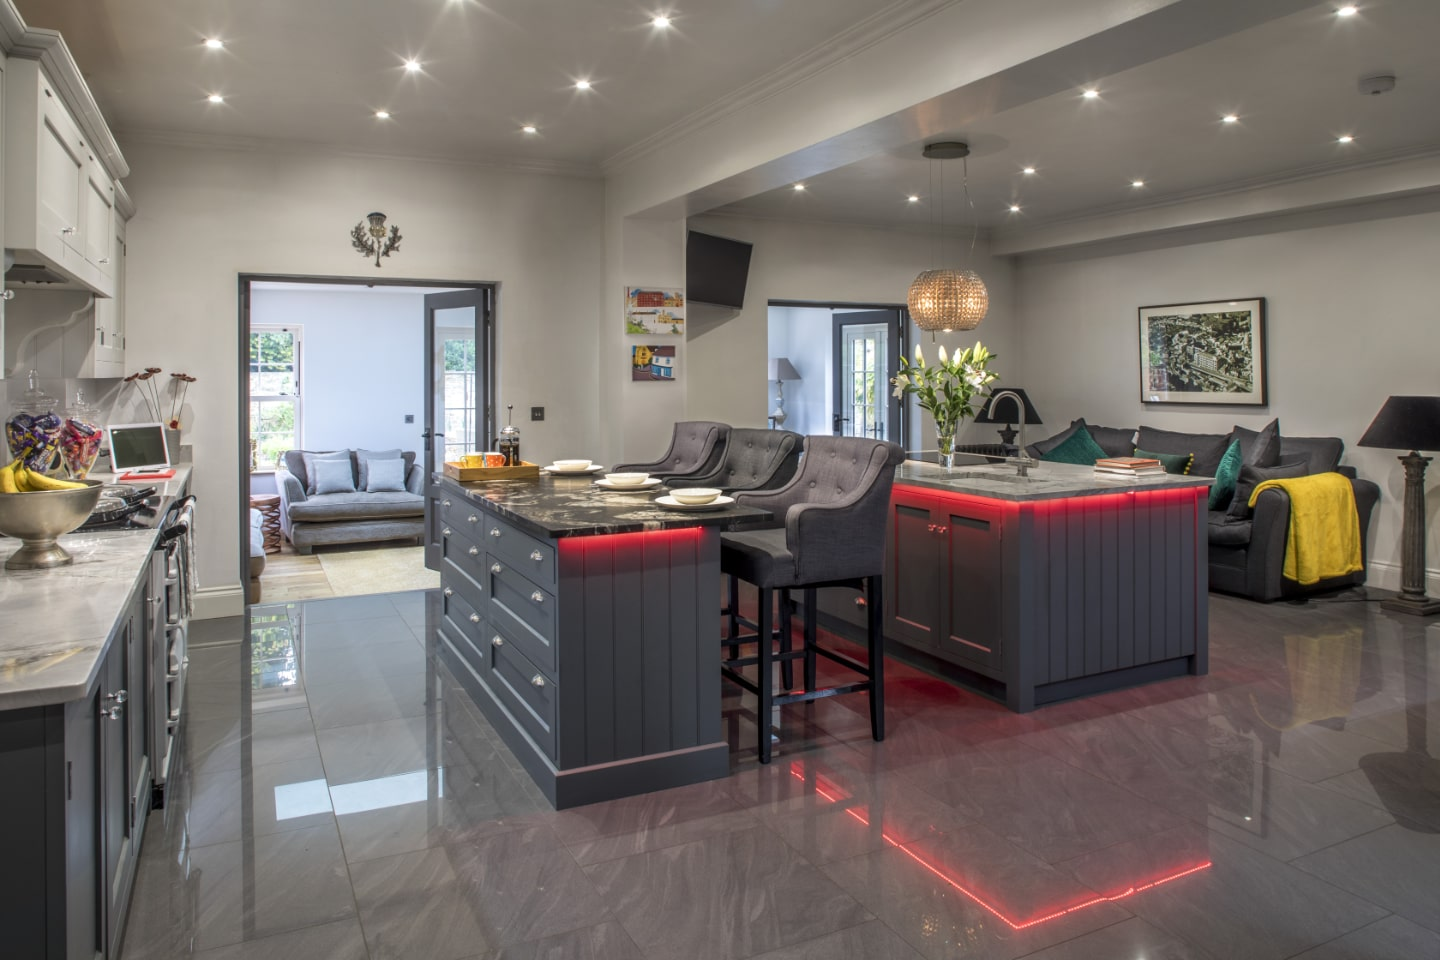 A bespoke kitchen with breakfast bar and red LED lighting underneath.